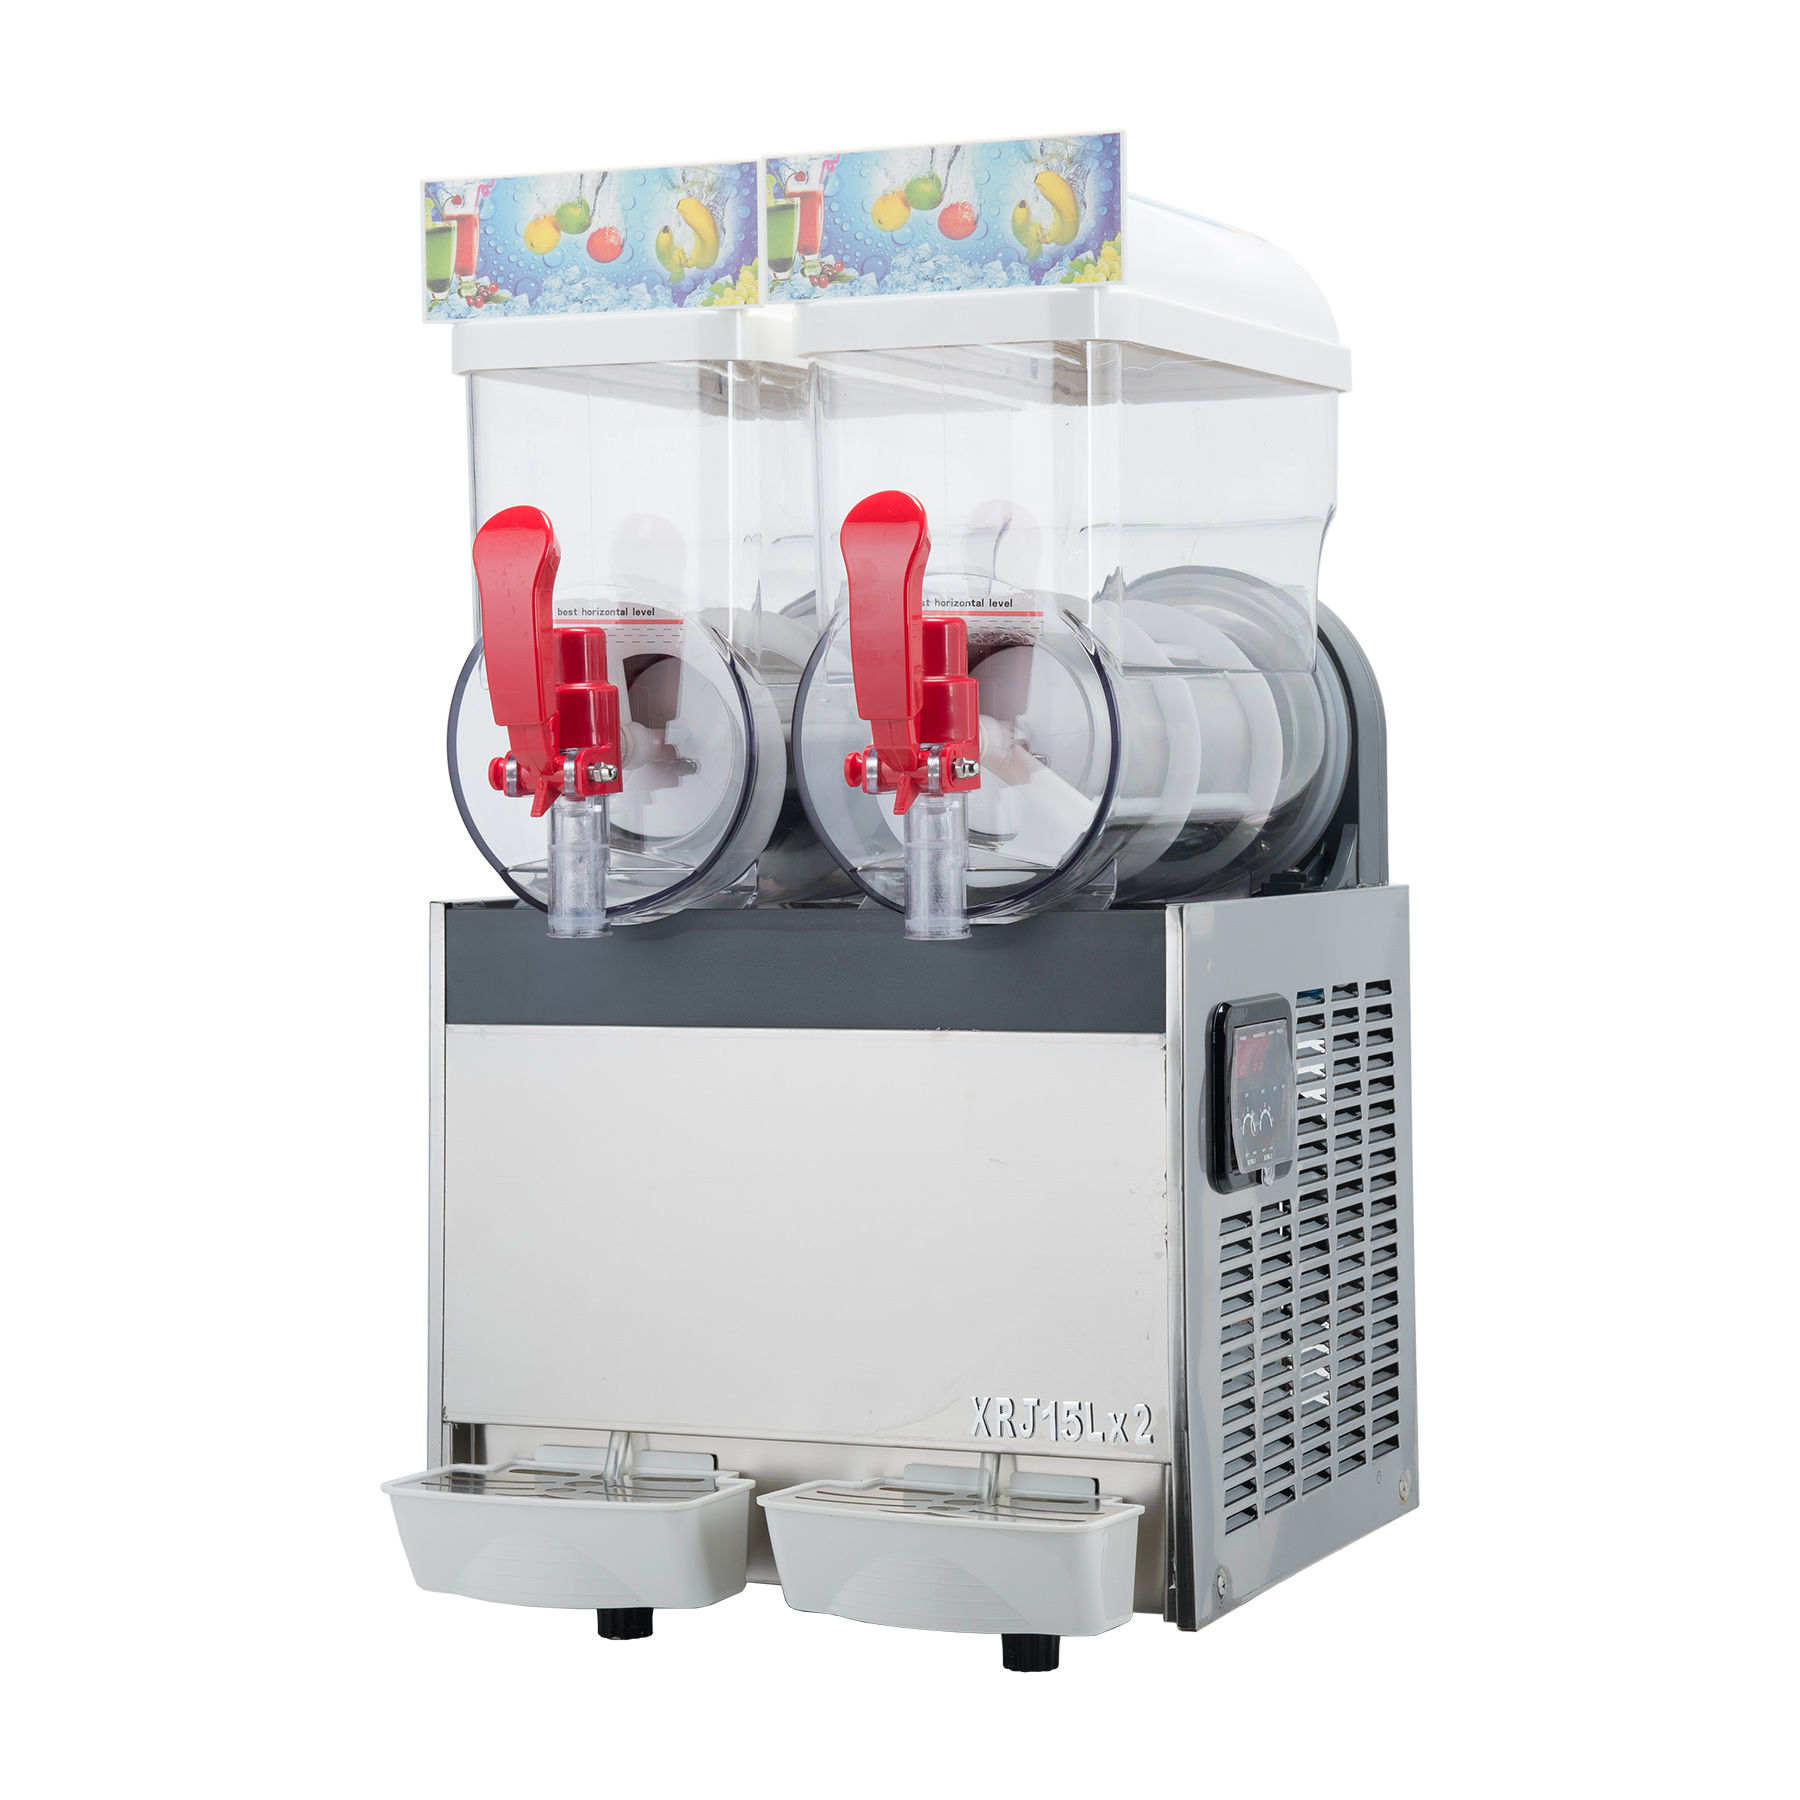 2 x 15L Slushy Machine Slush Making Machine Tanks Frozen Drink Machine Smoothie Maker 600W Suitable for Commercial Use